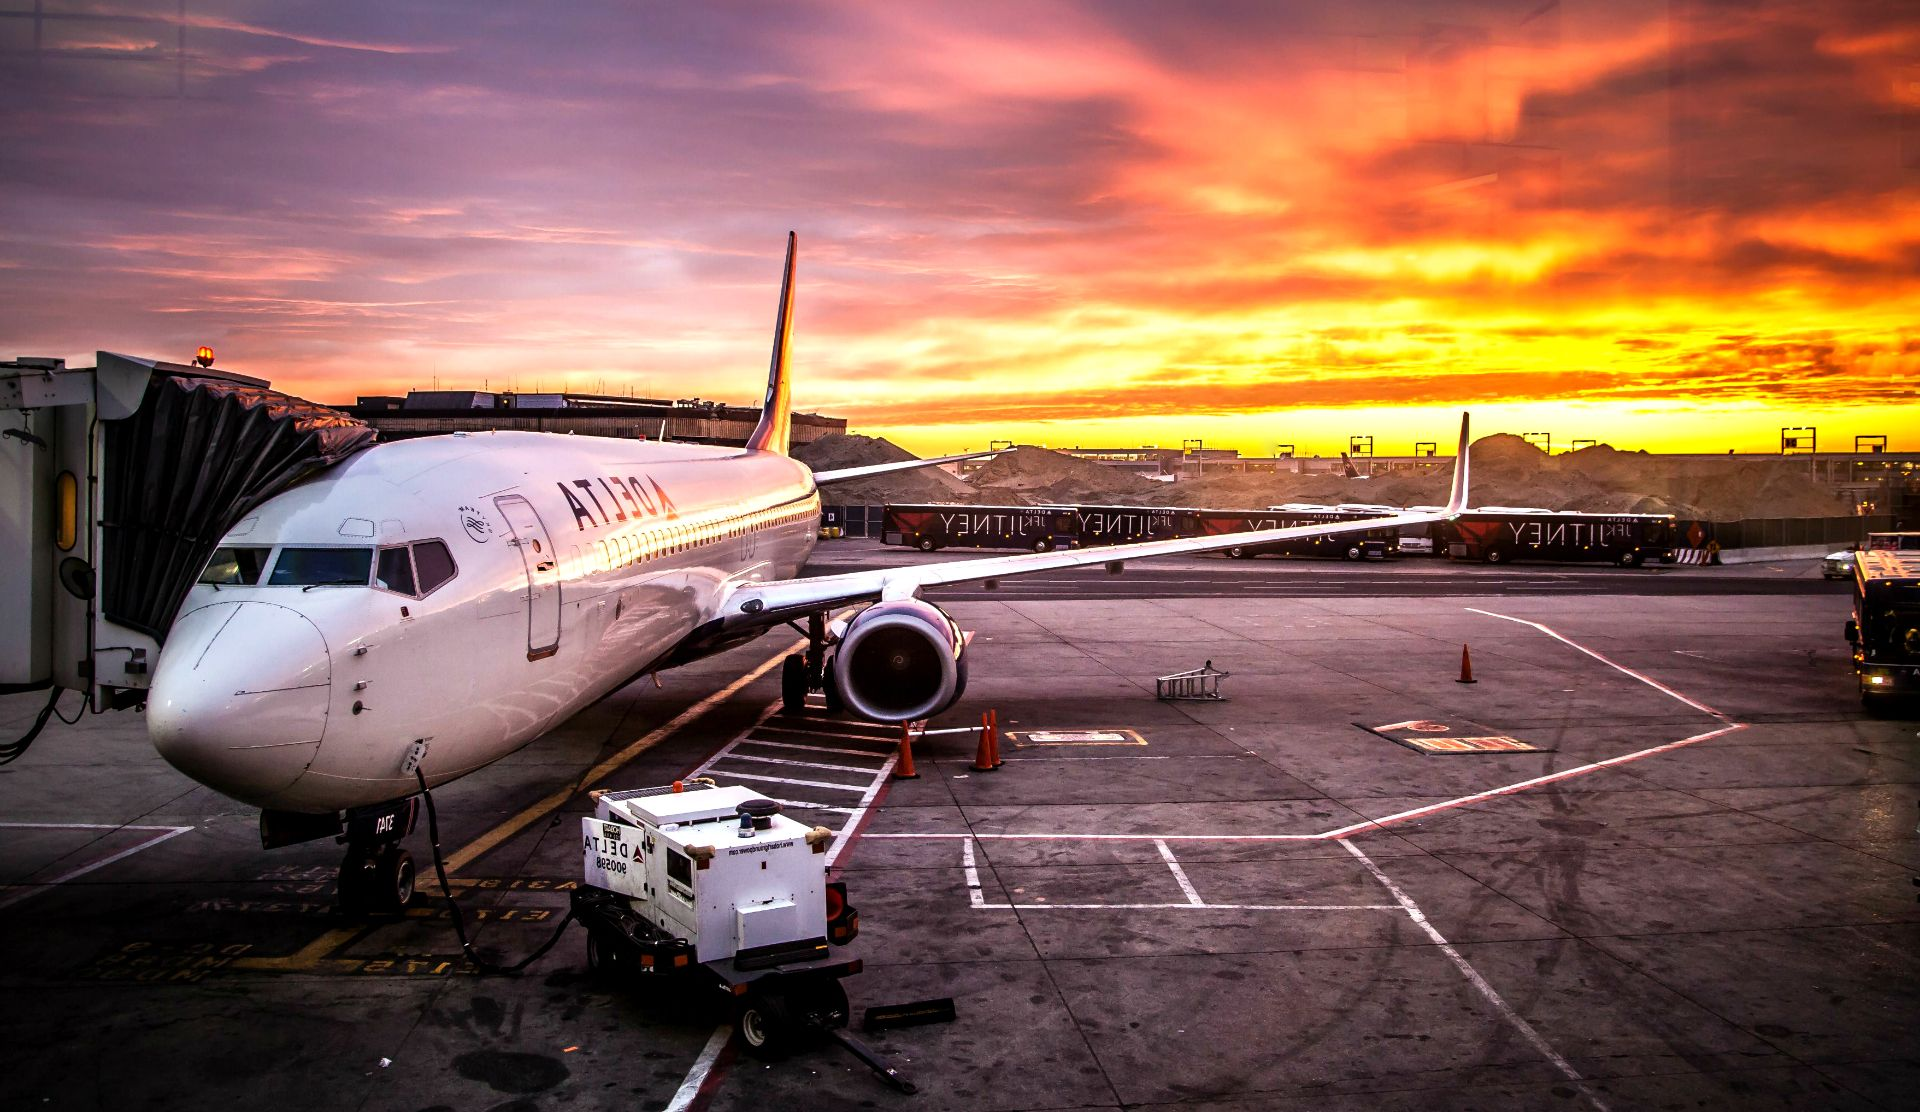 Plane Airport HD Wallpaper   HD Wallpapers 4 US Airplane 1920x1112